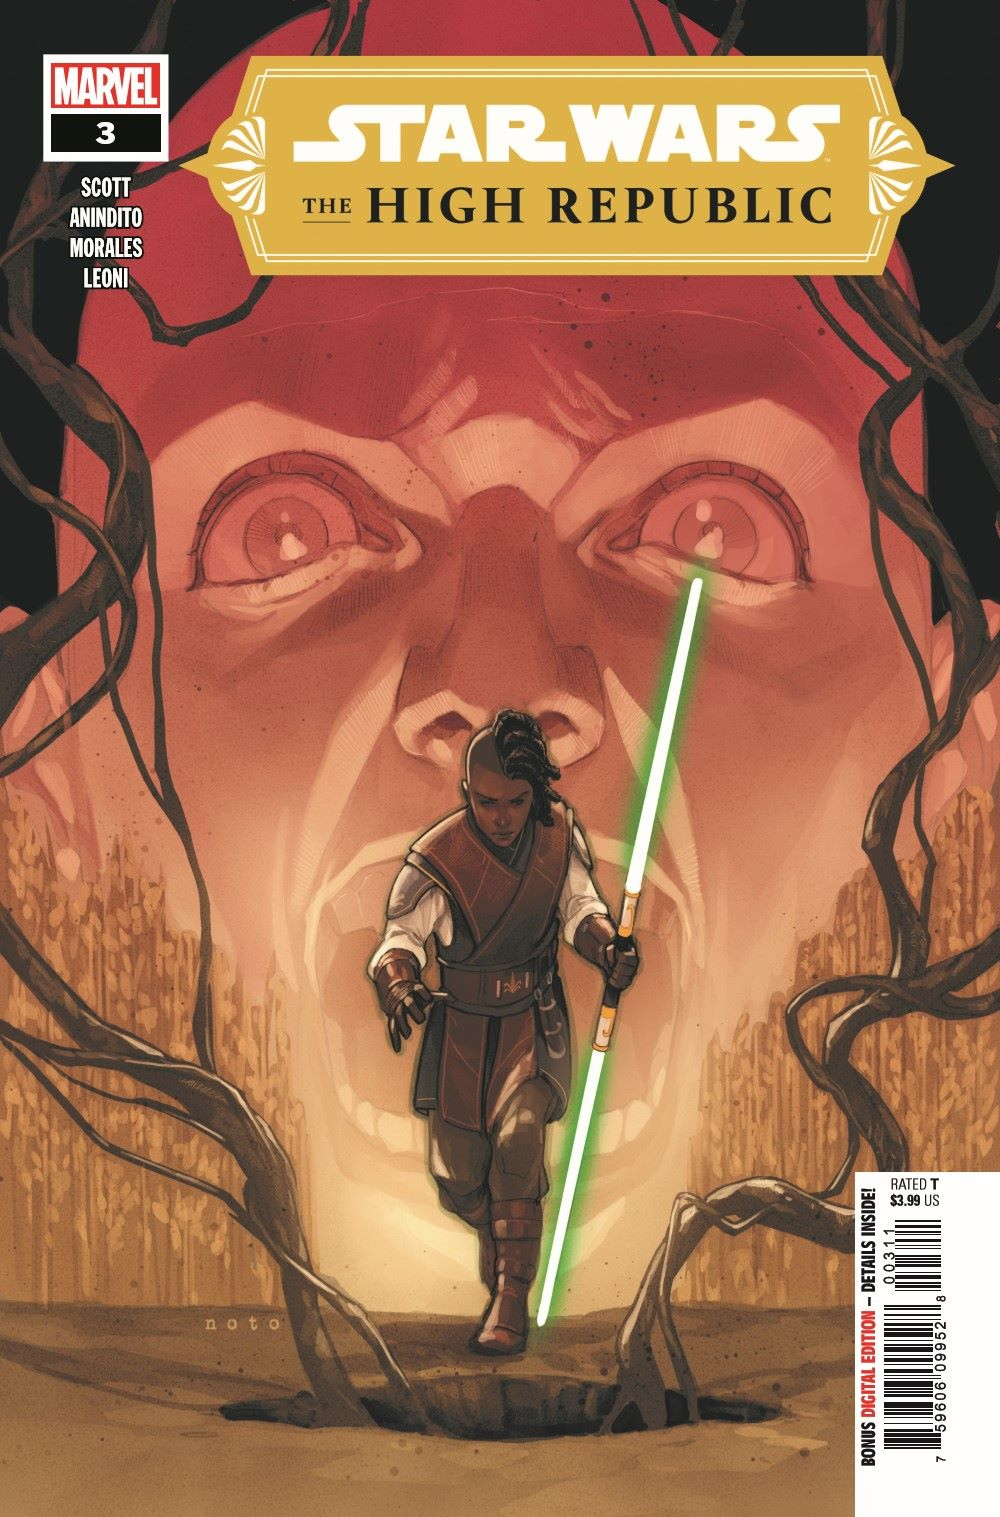 STWHIGHREP2020003_Preview-1 ComicList Previews: STAR WARS THE HIGH REPUBLIC #3